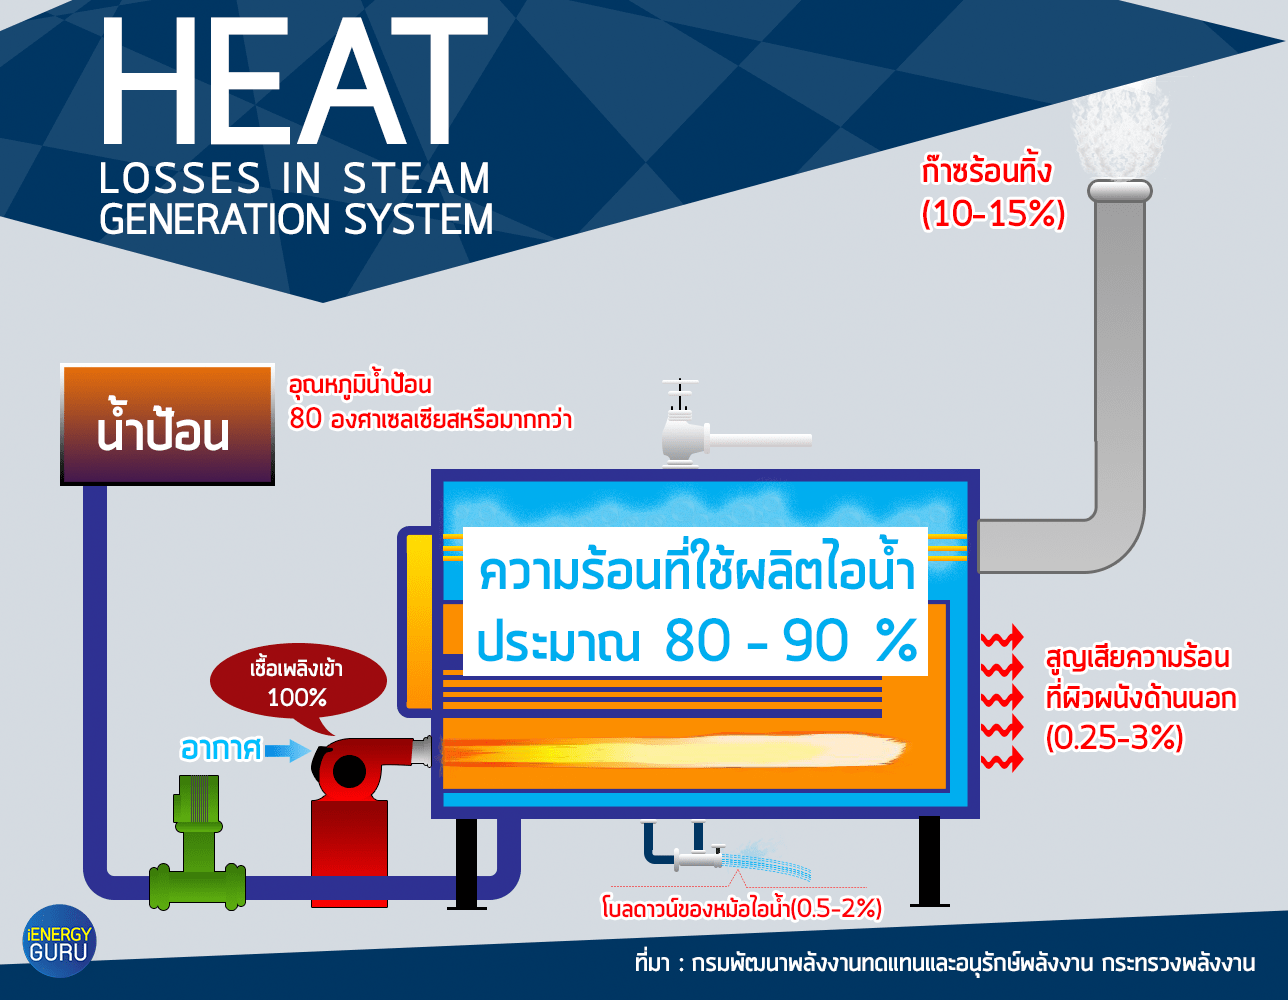 Steam generation system